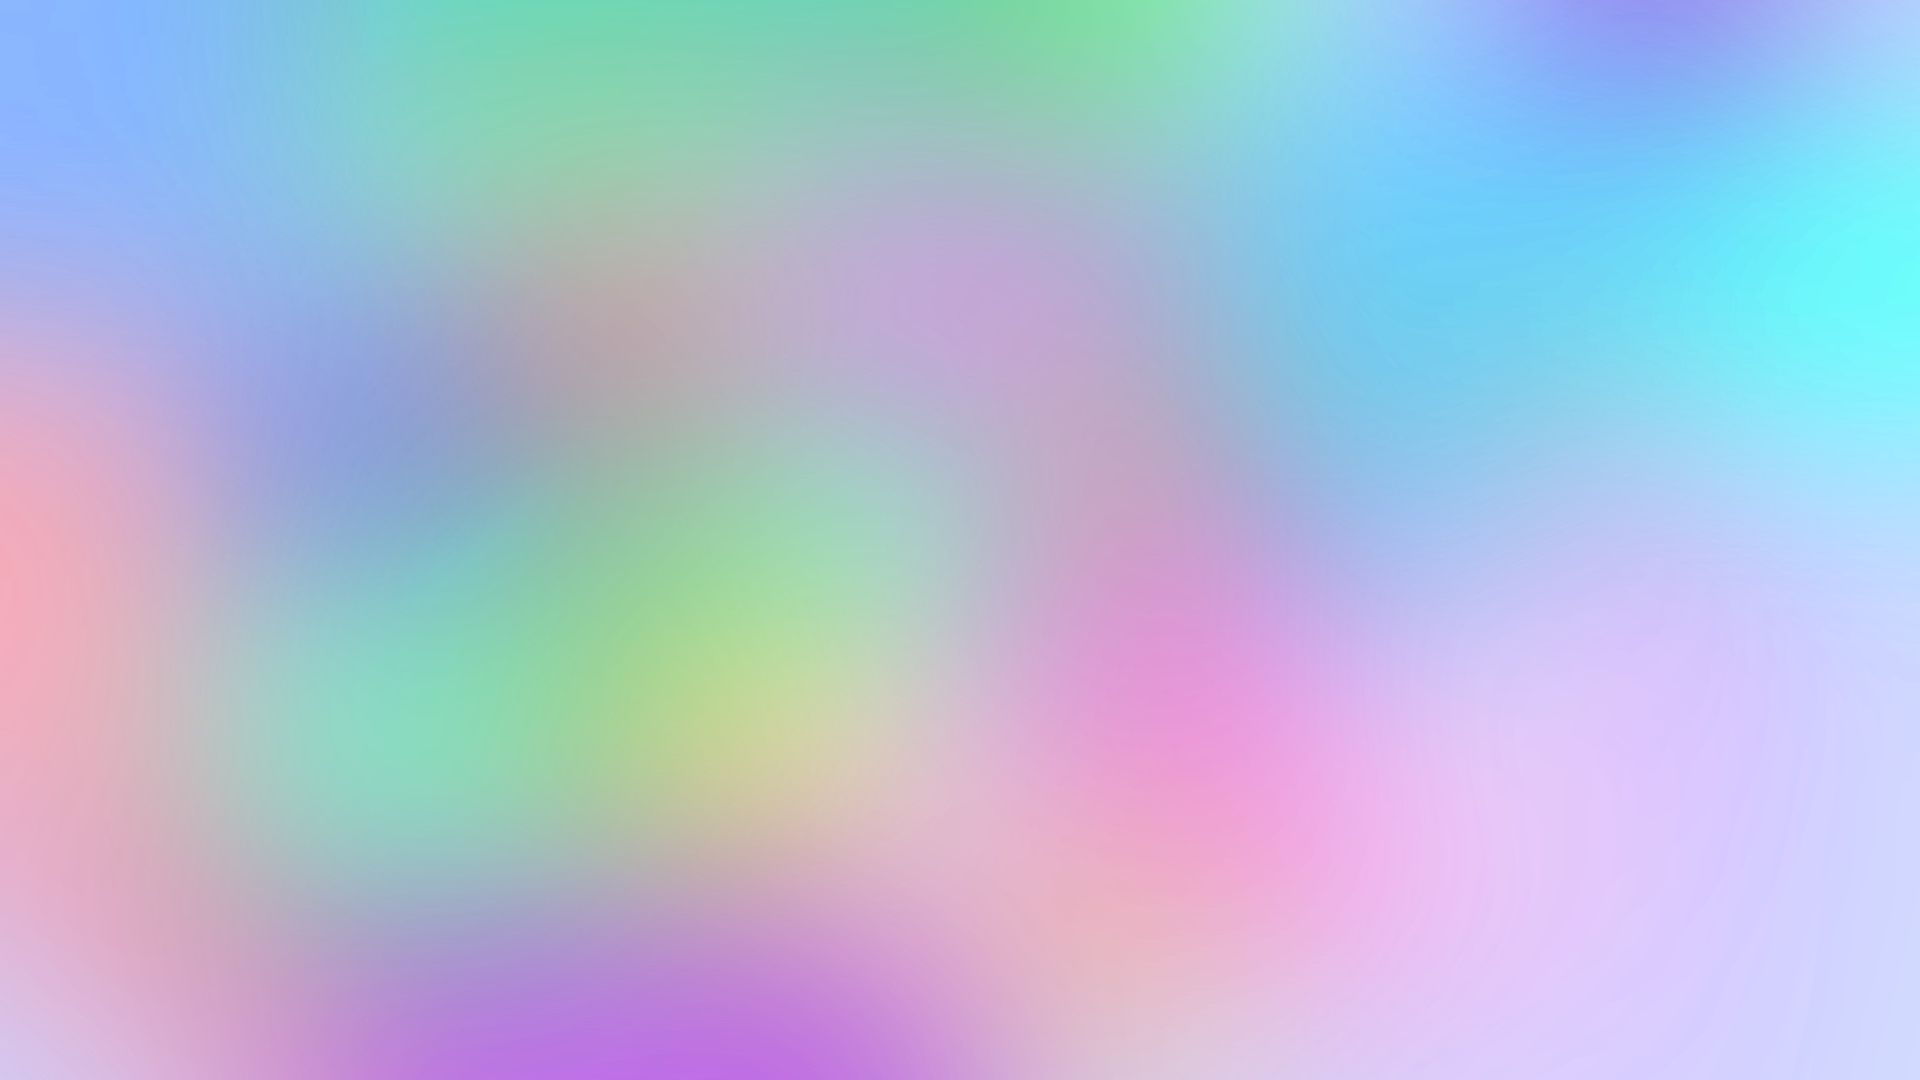 Pastel Rainbow Wallpapers Background Extra Wallpaper 1080p